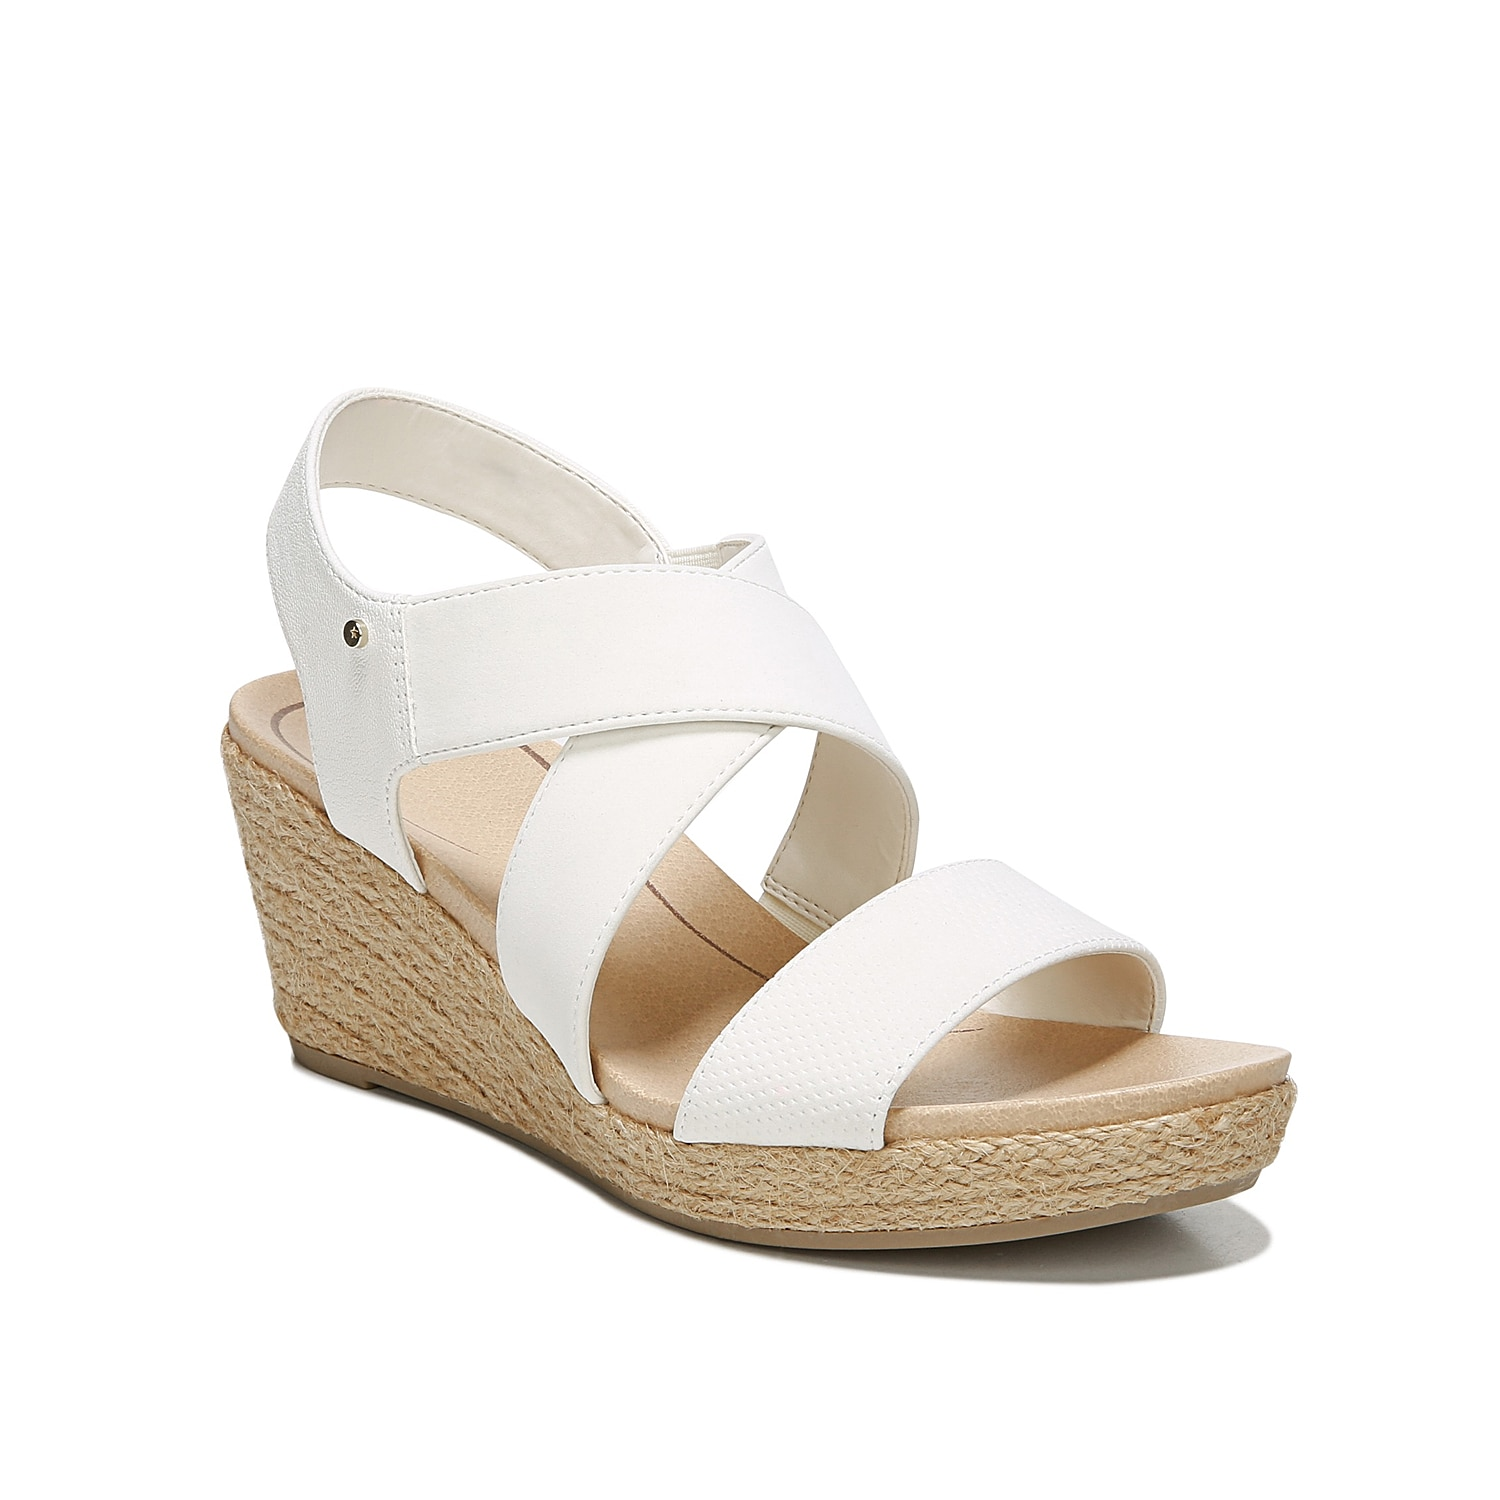 The Emerge wedge sandal from Dr. Scholl\\\'s flaunts an espadrille heel to give your look that laid-back vibe. Pair this strappy sandal with your favorite pair of capris and a flowy top to stay right on trend.